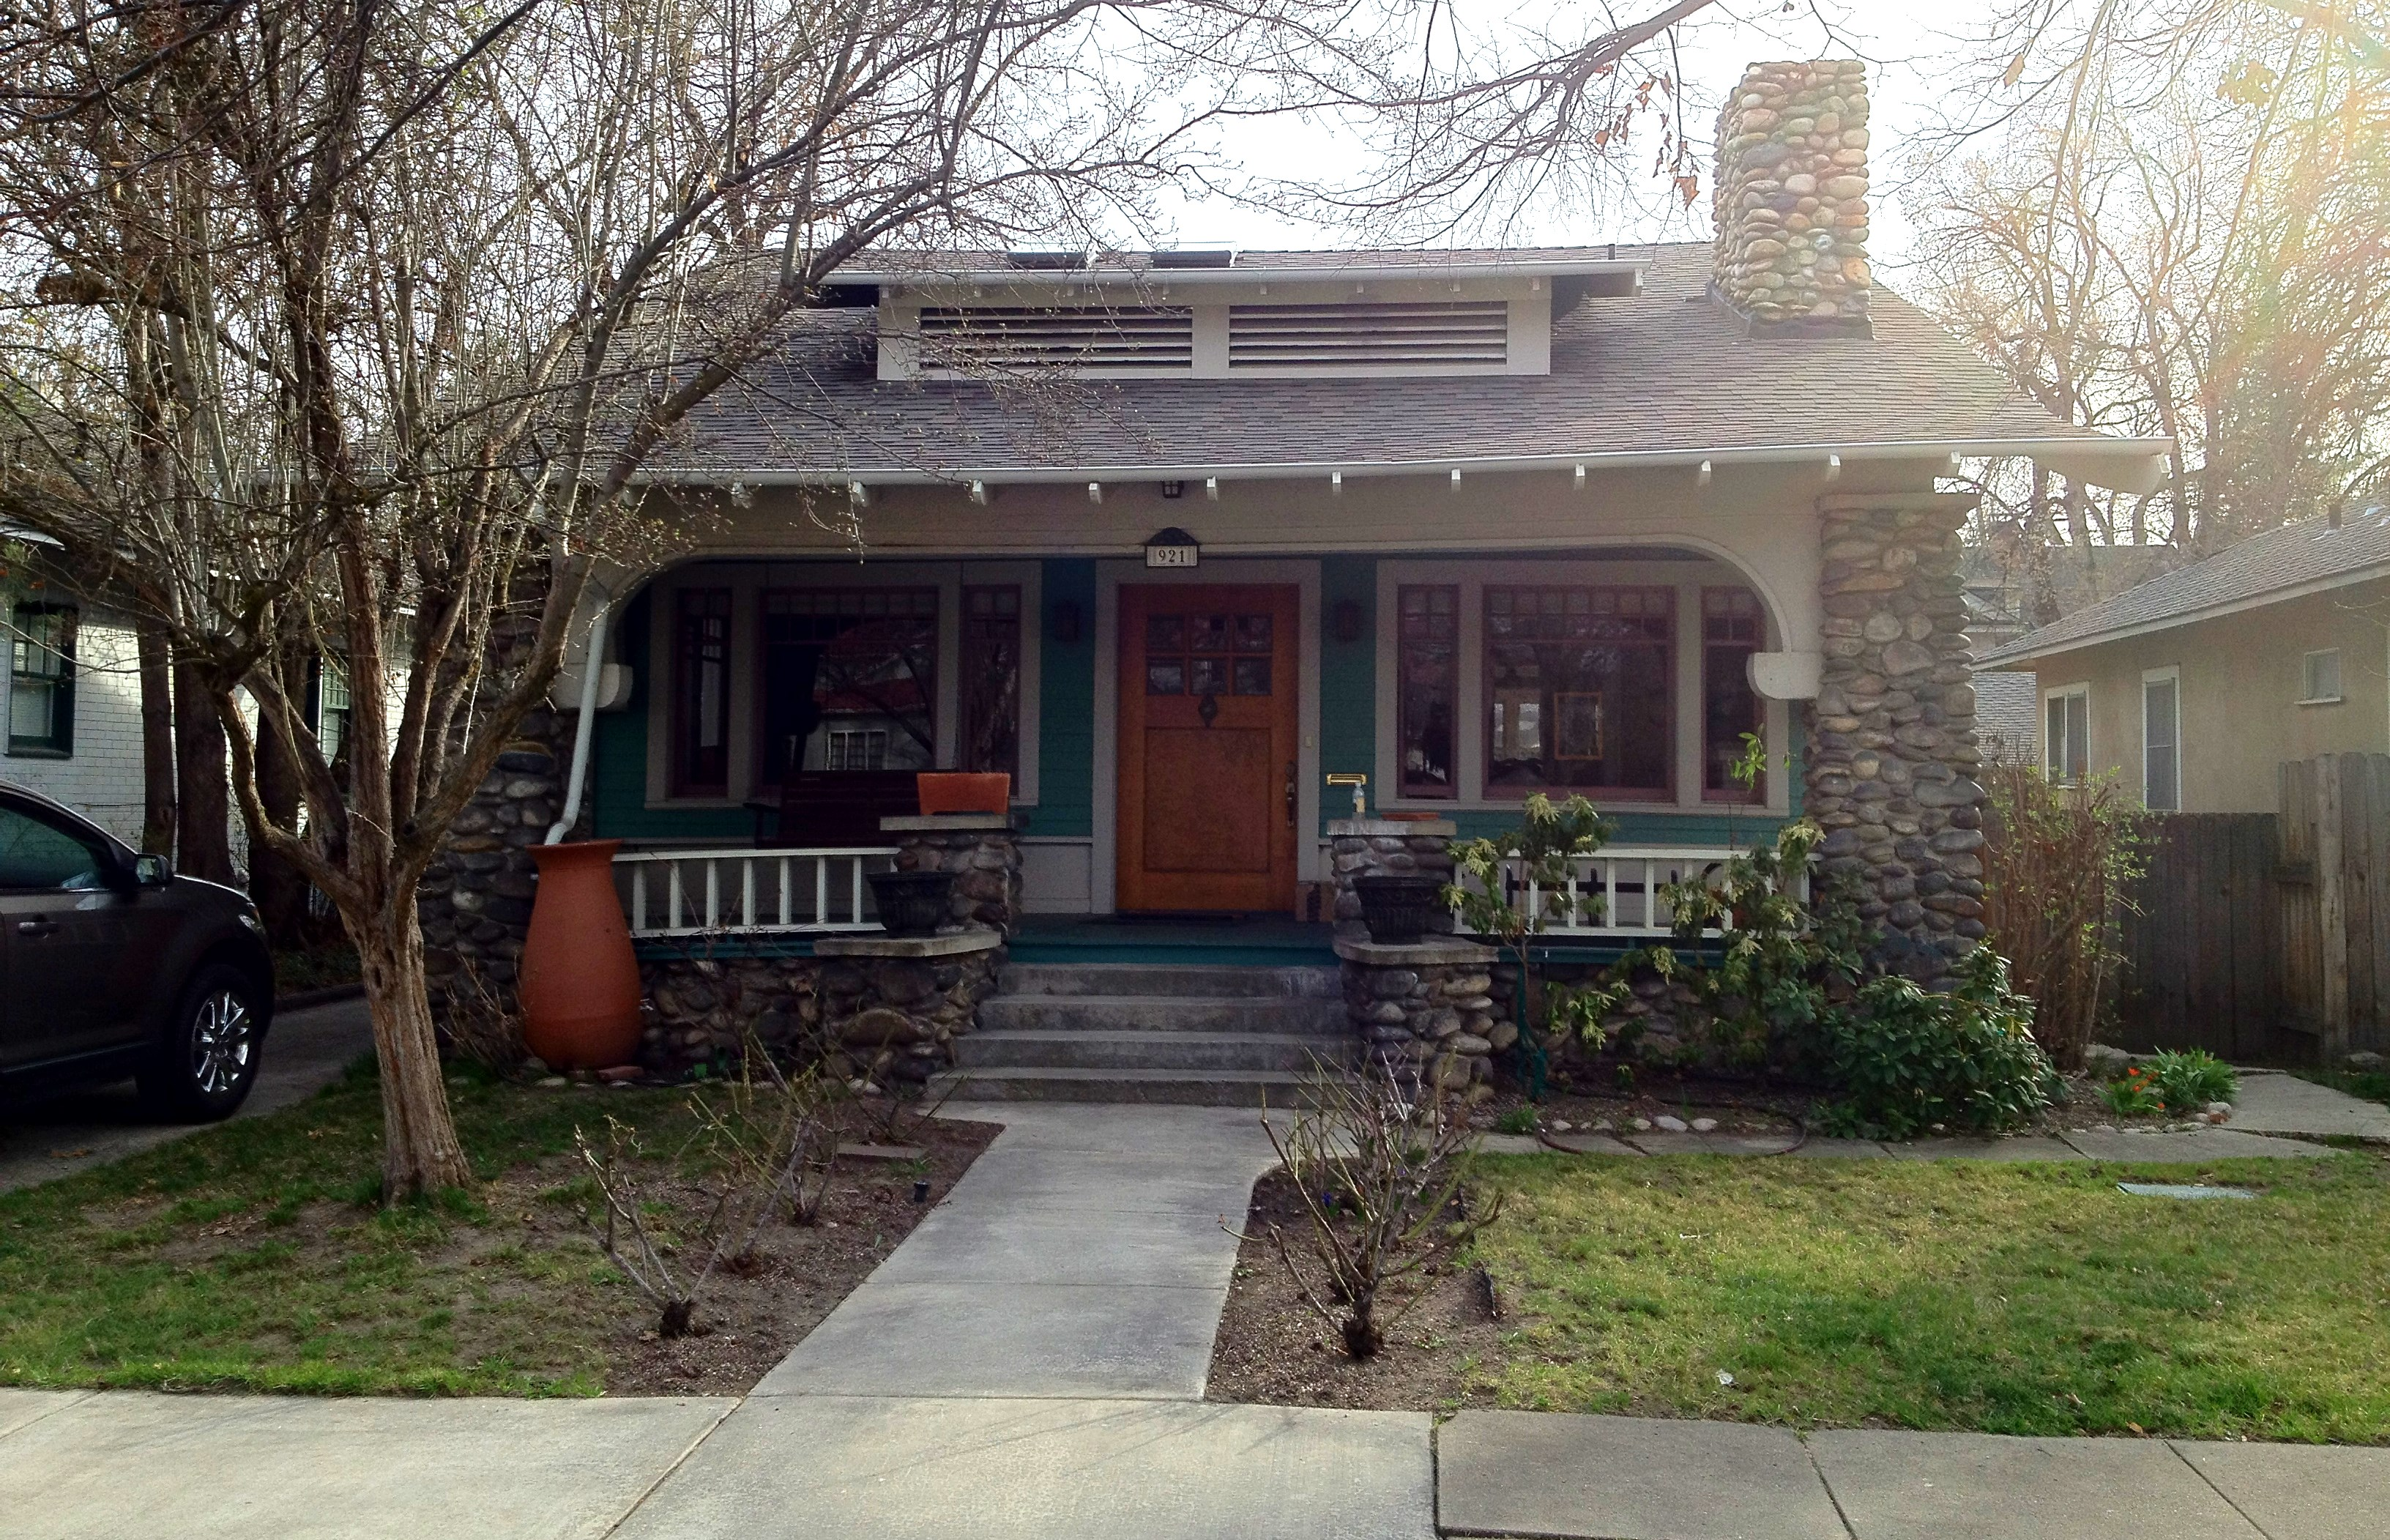 Photo essay the eclectic bungalows of boise idaho the - What is a bungalow house ...